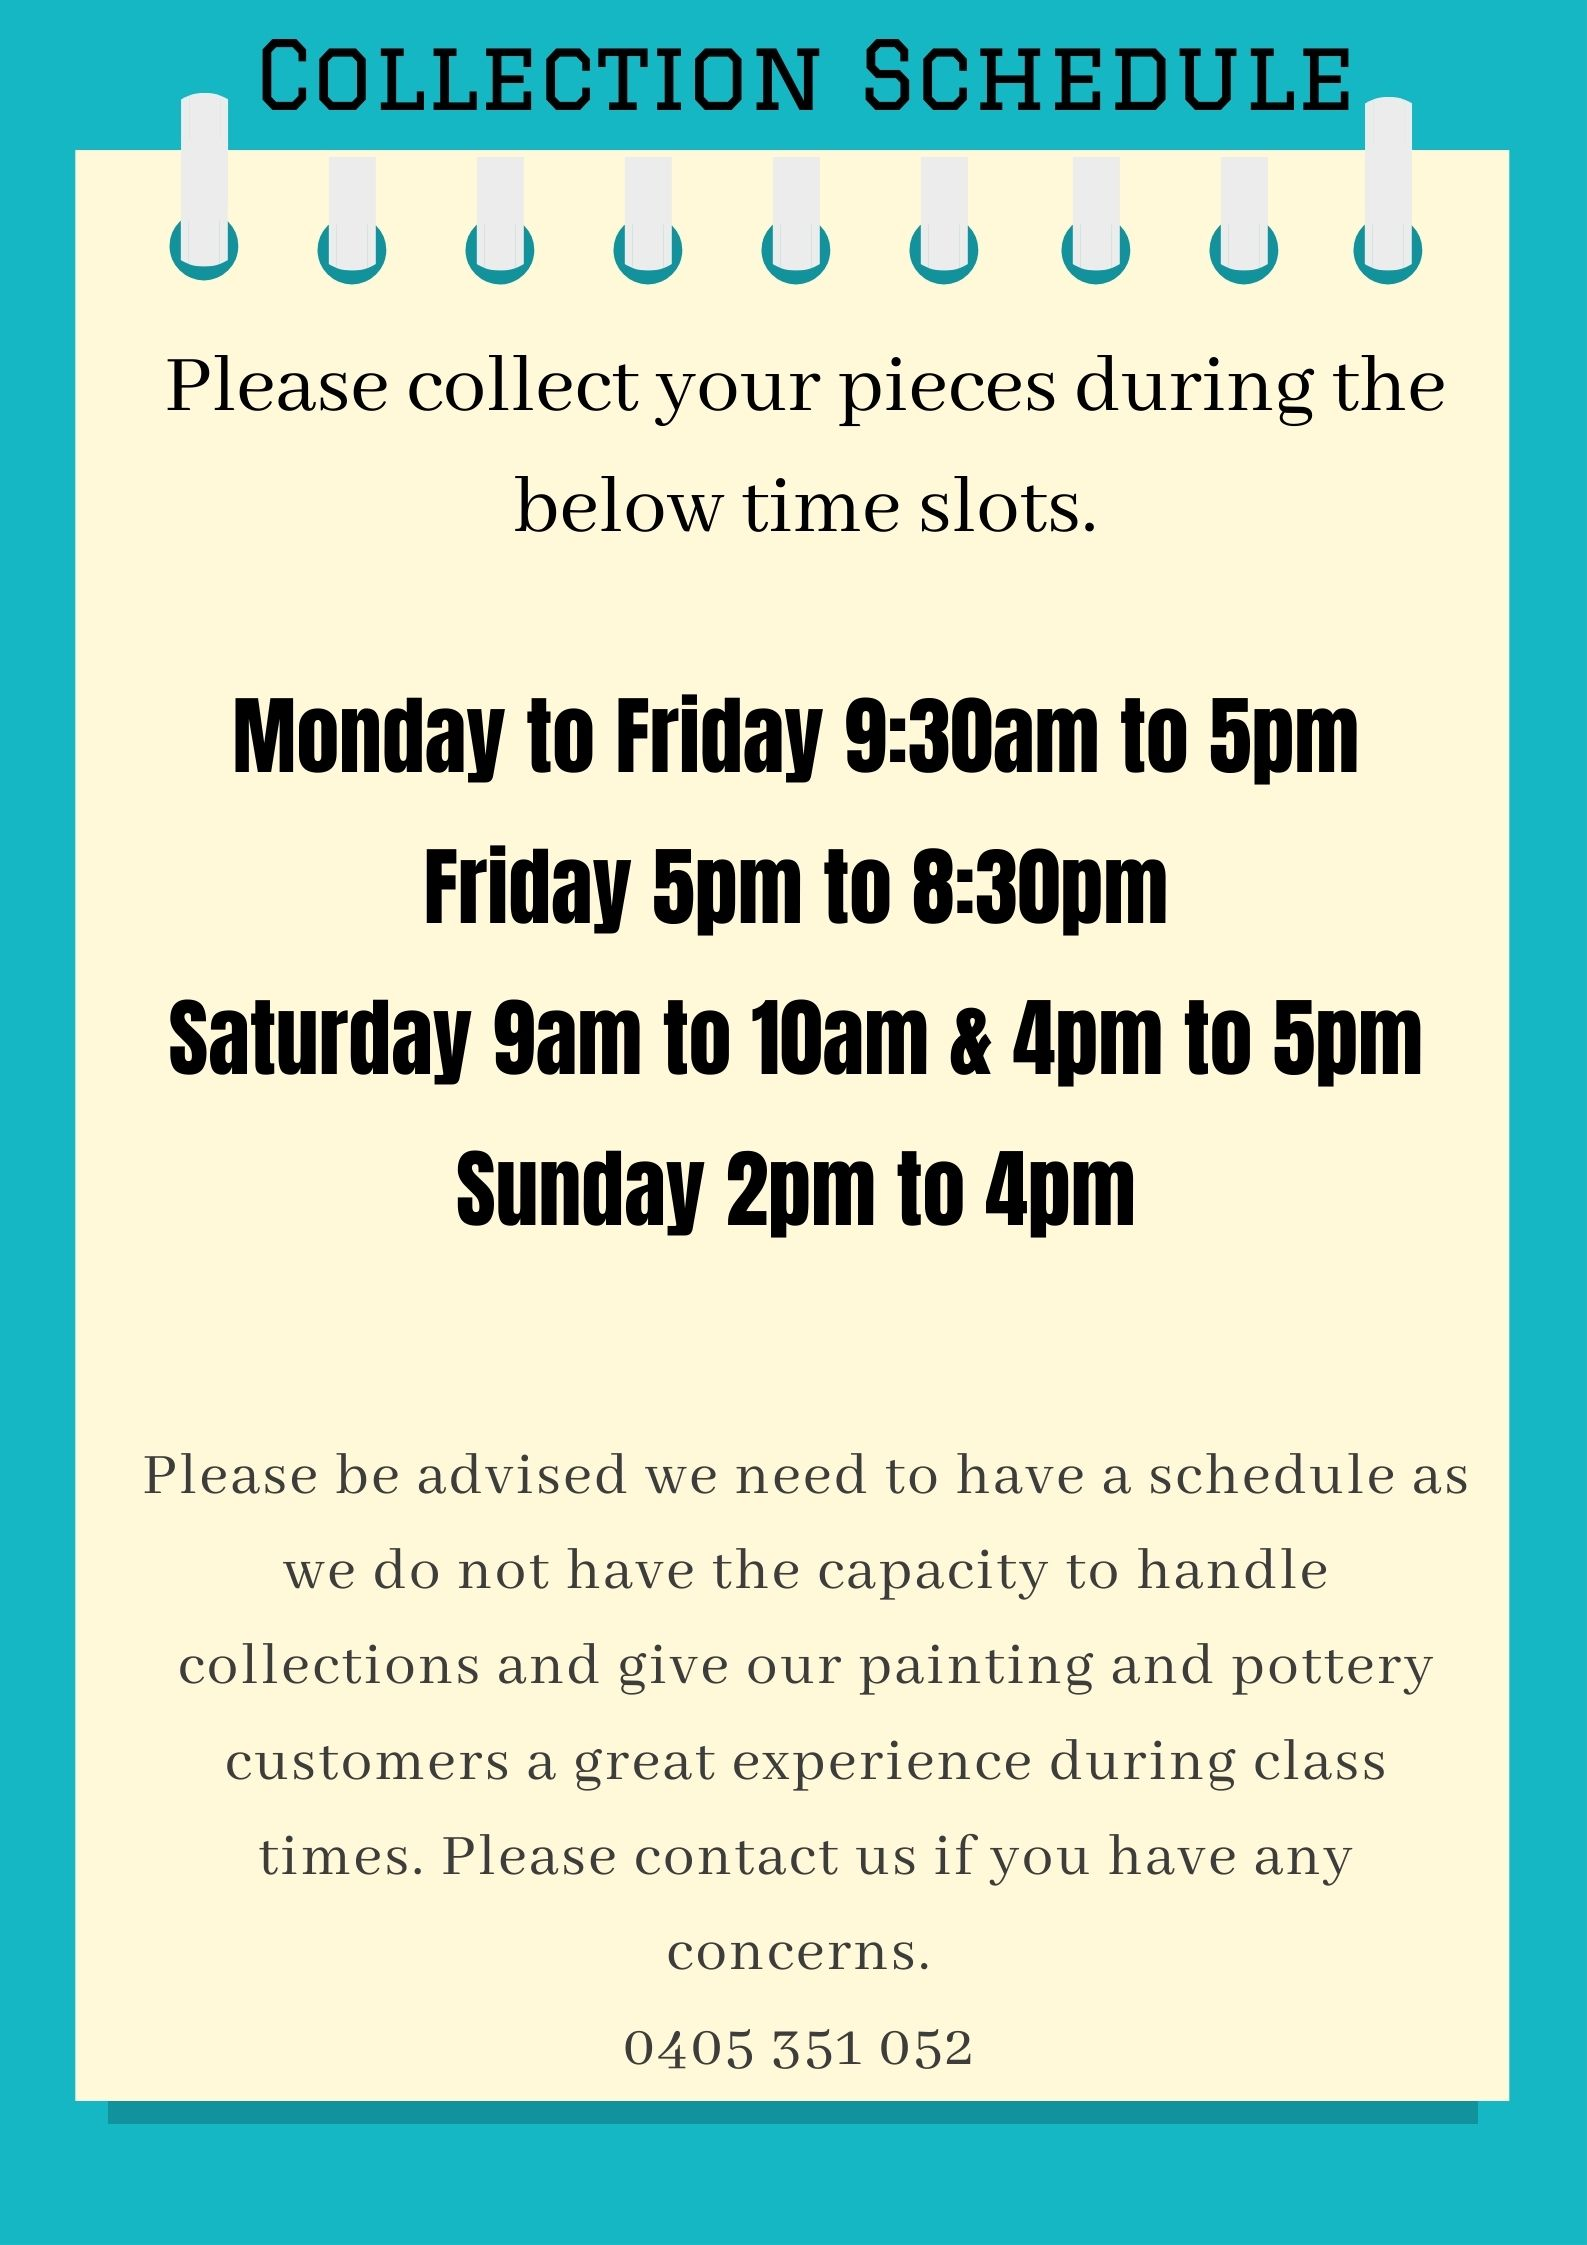 Collection schedule